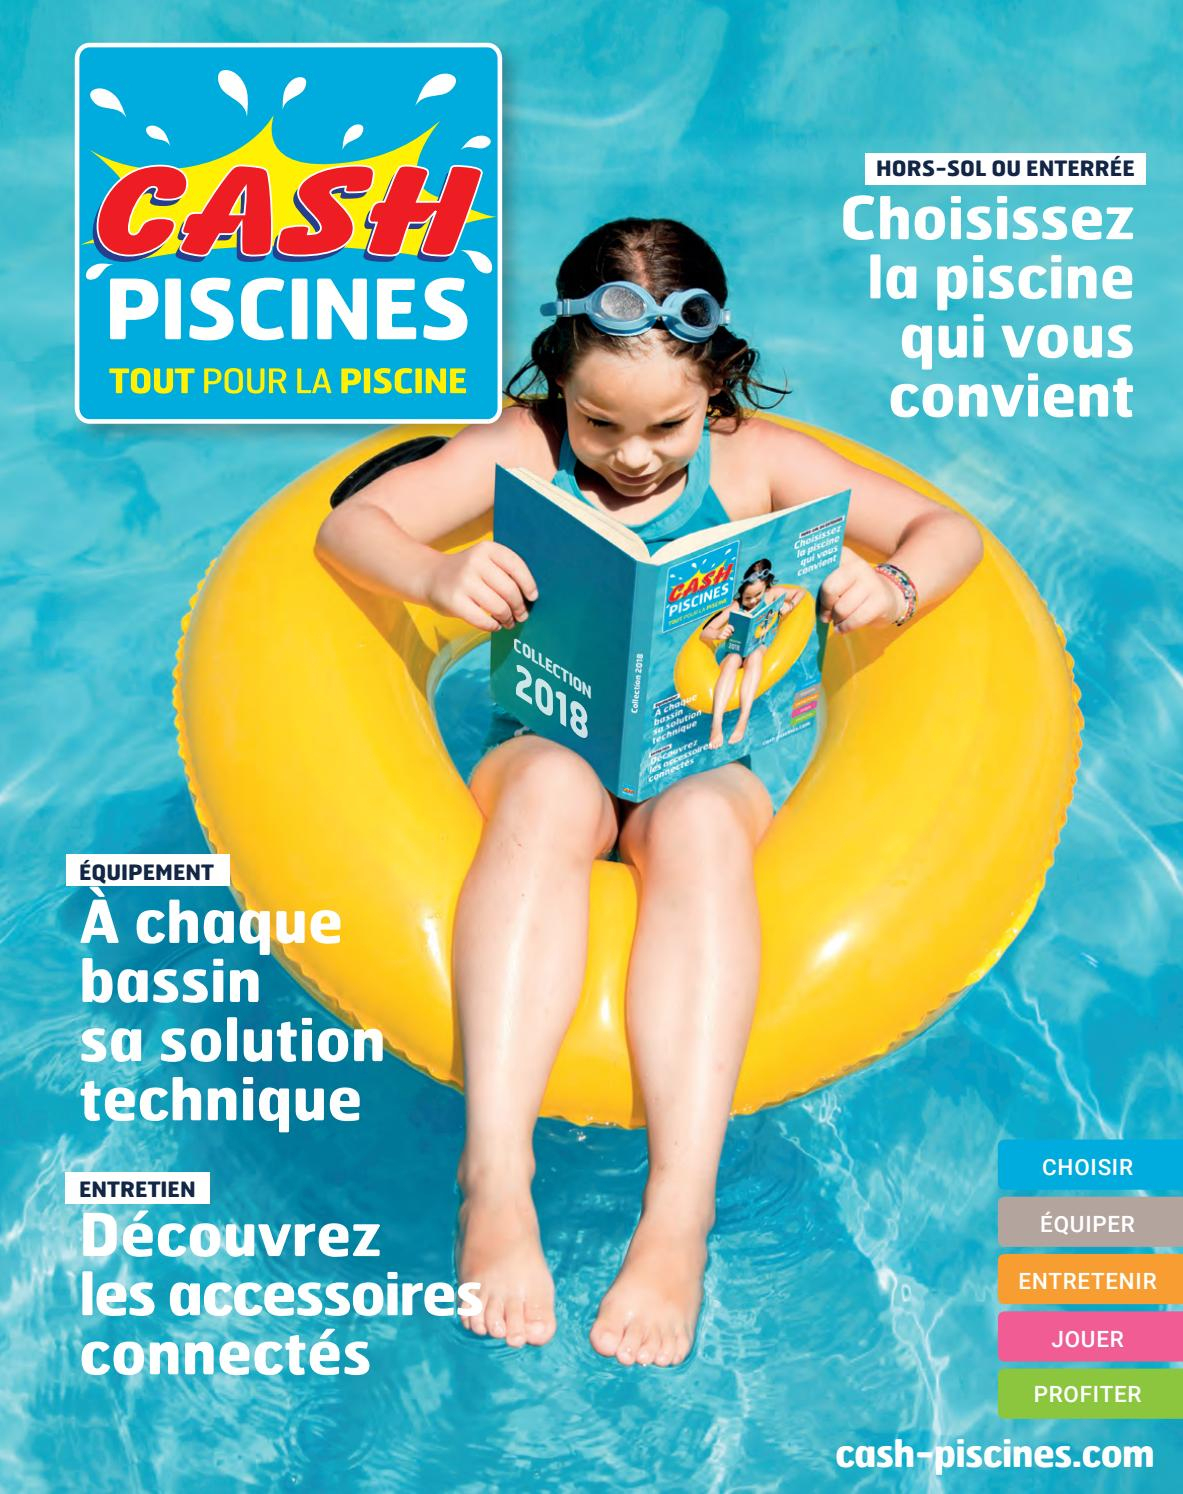 Catalogue Cash Piscine 2018 By Octave Octave - Issuu intérieur Cash Piscine Agen